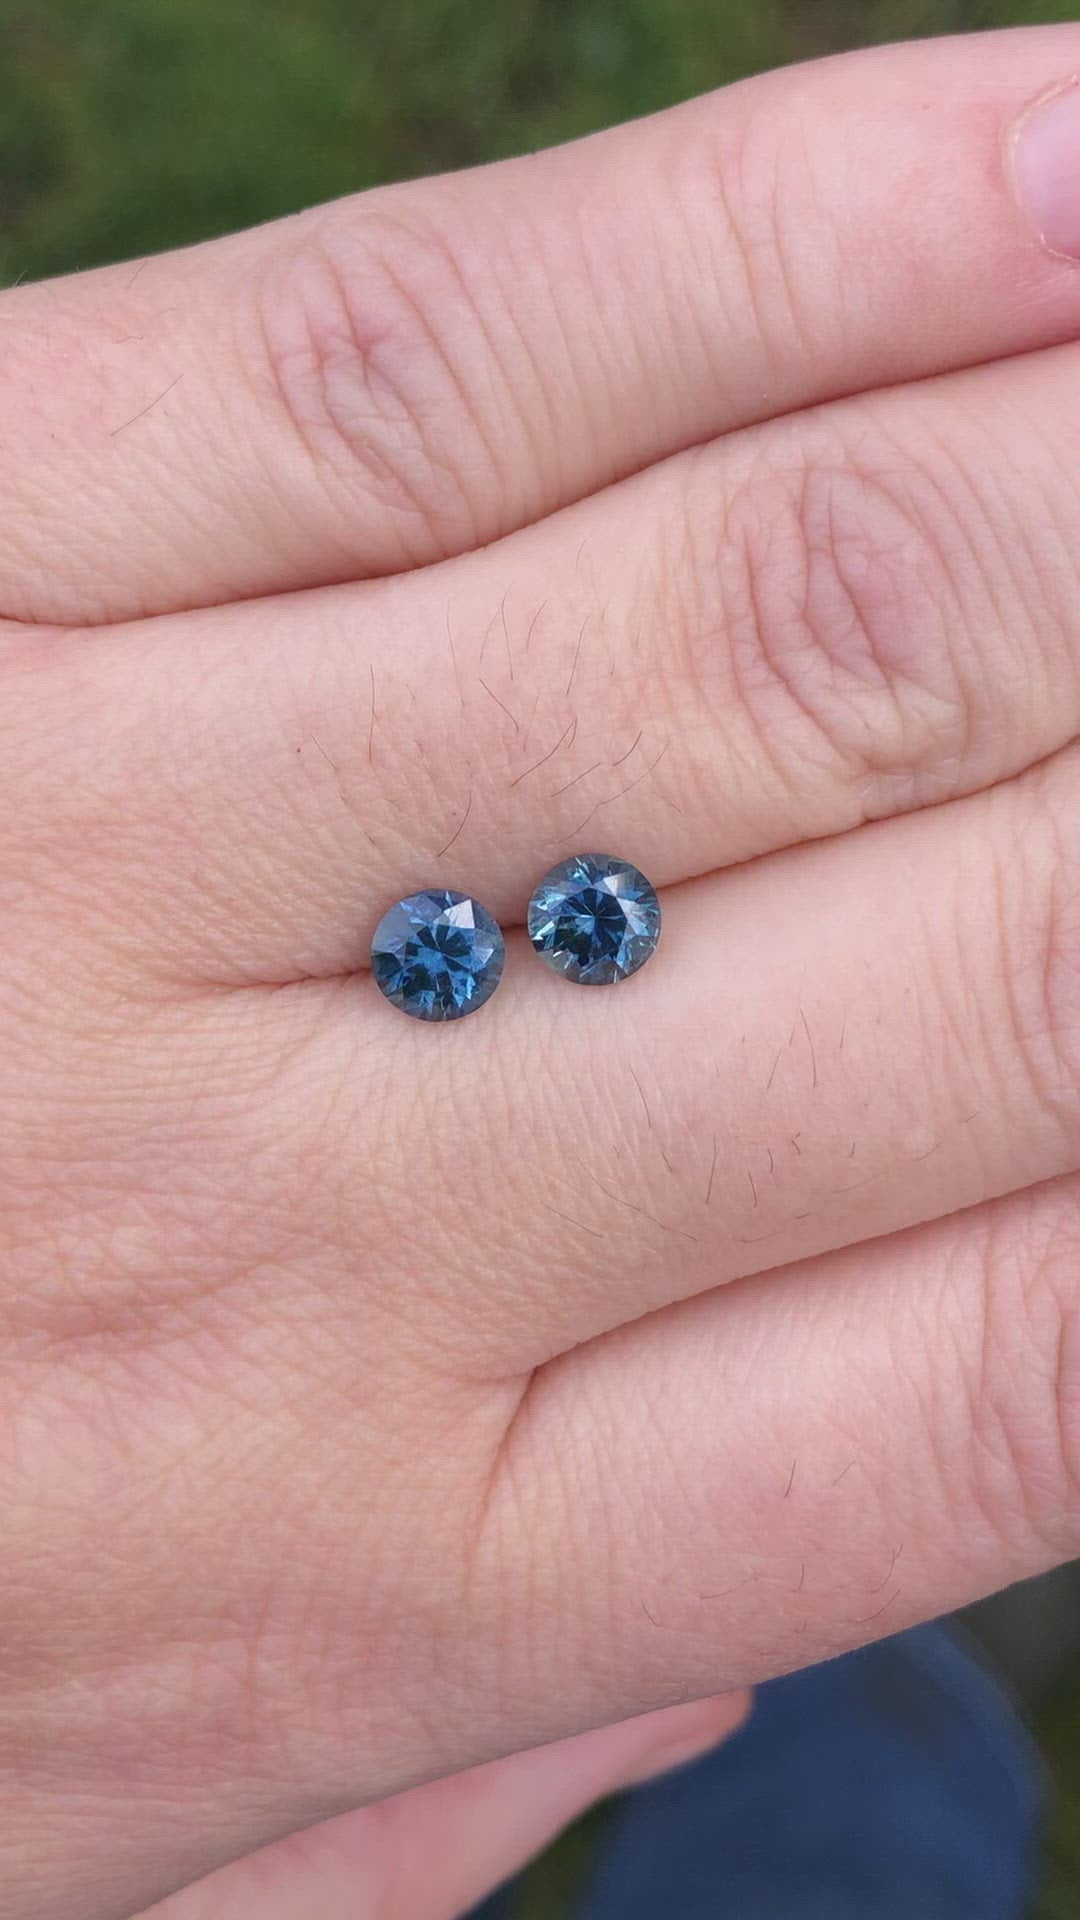 Montana Sapphire Matched Pair 1.73 Cts Round Cut Blue with Gray,Teal and Peach